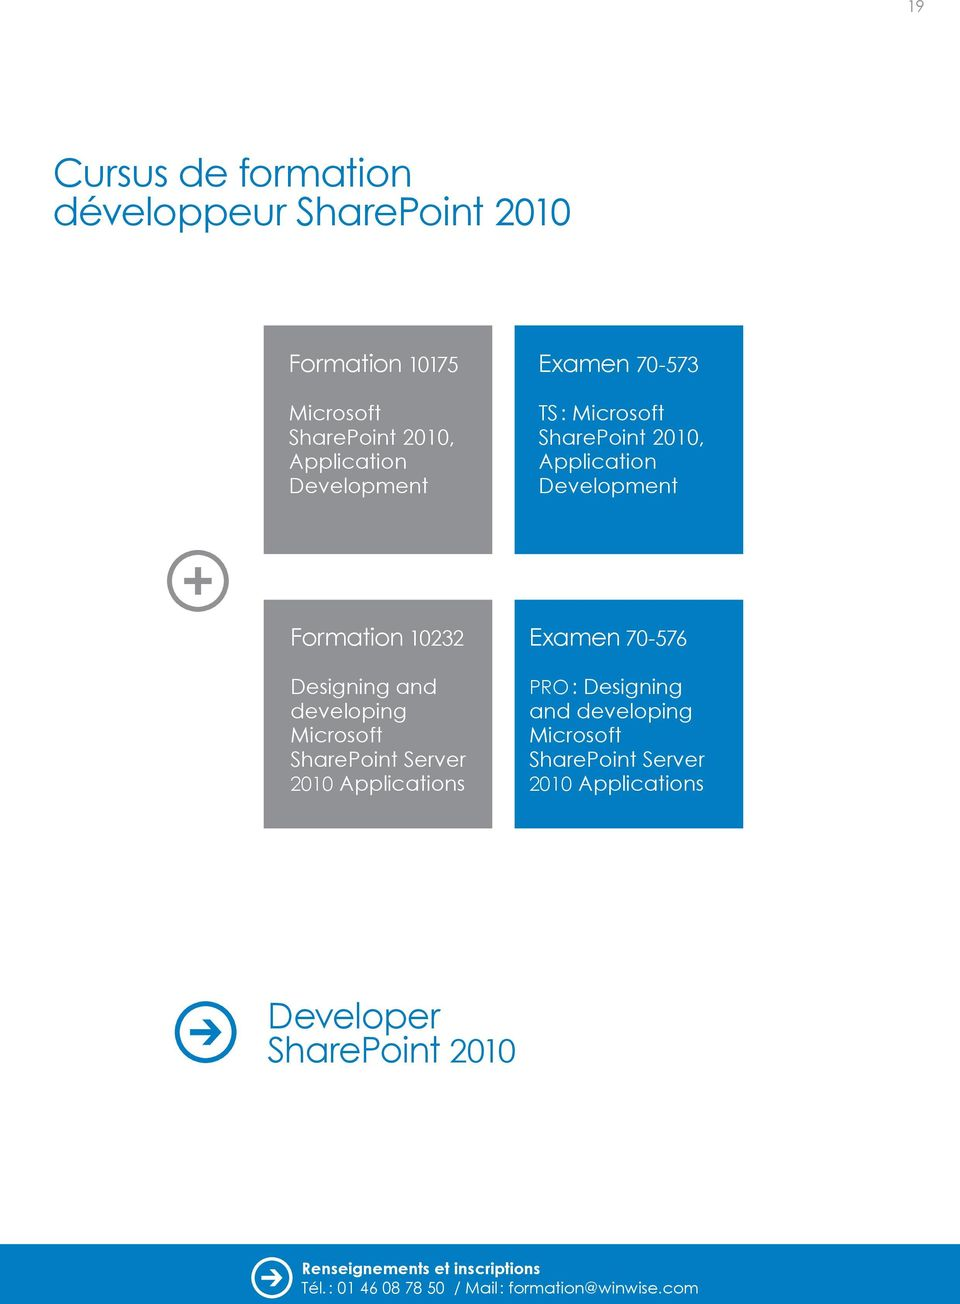 Formation 10232 Designing and developing Microsoft SharePoint Server 2010 Applications Examen